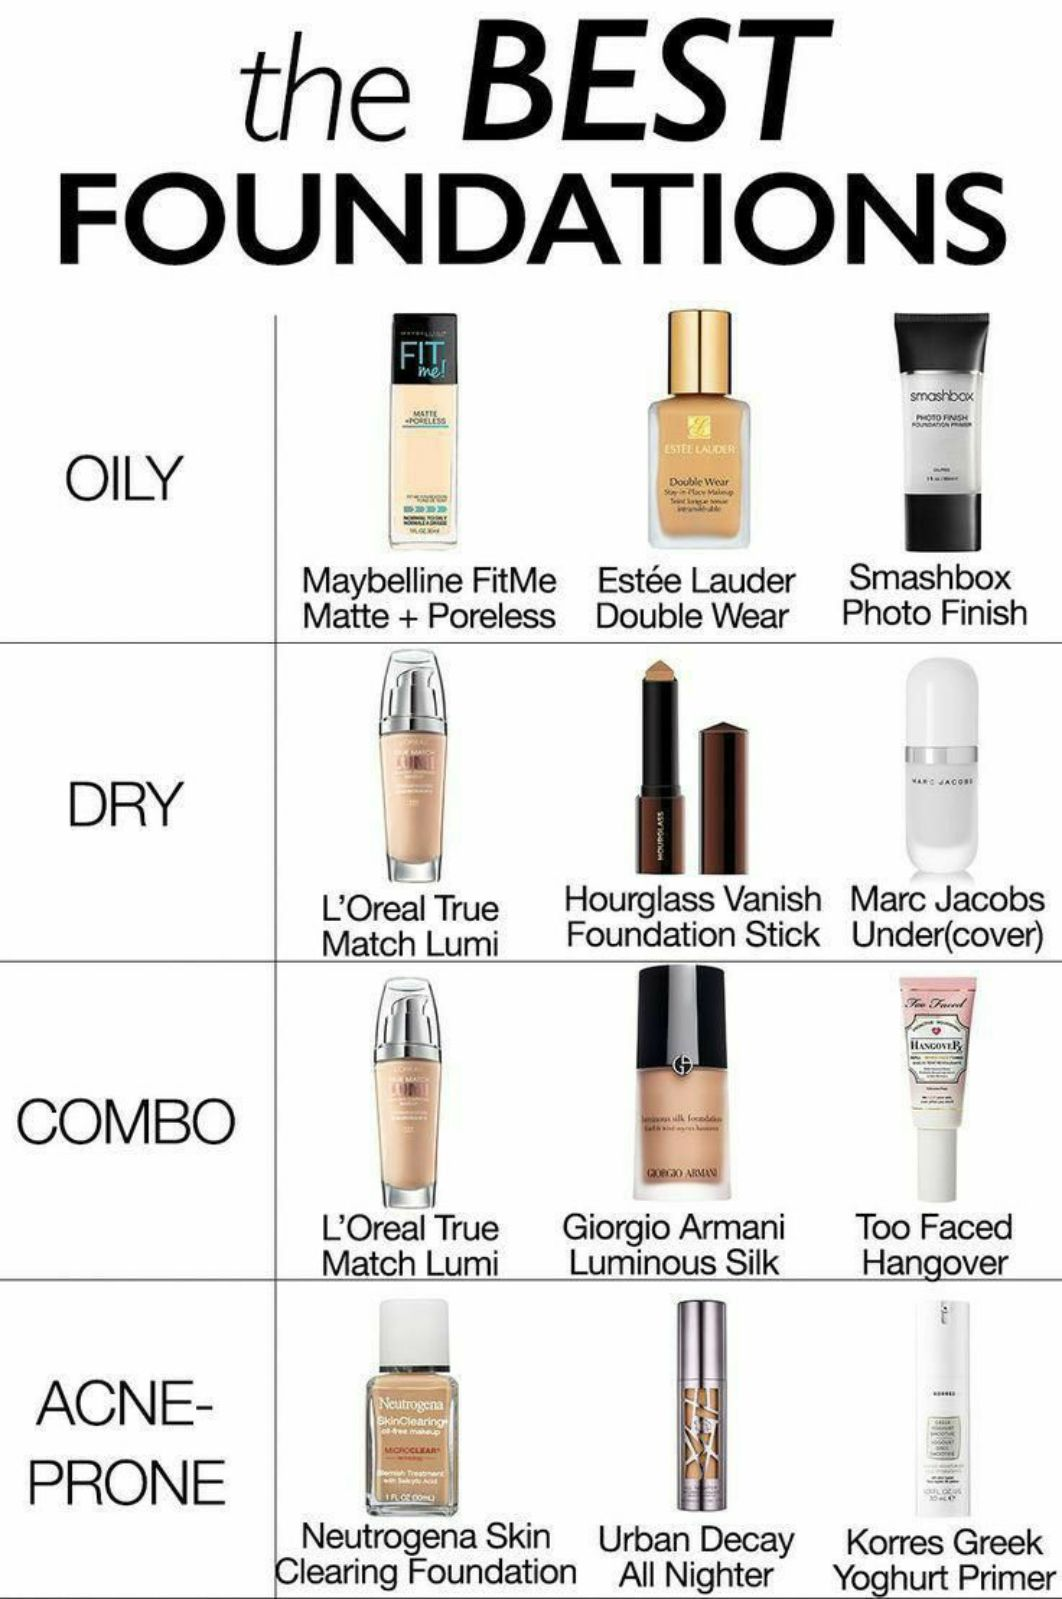 💄 मेकअप टिप्स - the BEST FOUNDATIONS me smashbox R ESS ESTEE LAUDER OILY Double Wear Saylocal Maybelline Fit Me Estée Lauder Matte + Poreless Double Wear Smashbox Photo Finish DRY MOUROLASS L ' Oreal True Match Lumi Hourglass Vanish Marc Jacobs Foundation Stick Under ( cover ) HANGOVER IL COMBO QORXO ARMAN L ' Oreal True Match Lumi Giorgio Armani Luminous Silk Too Faced Hangover Neutrogena SkinClearing ACNE PRONE MOROCLEAR Com Neutrogena Skin Clearing Foundation Urban Decay All Nighter Korres Greek Yoghurt Primer - ShareChat